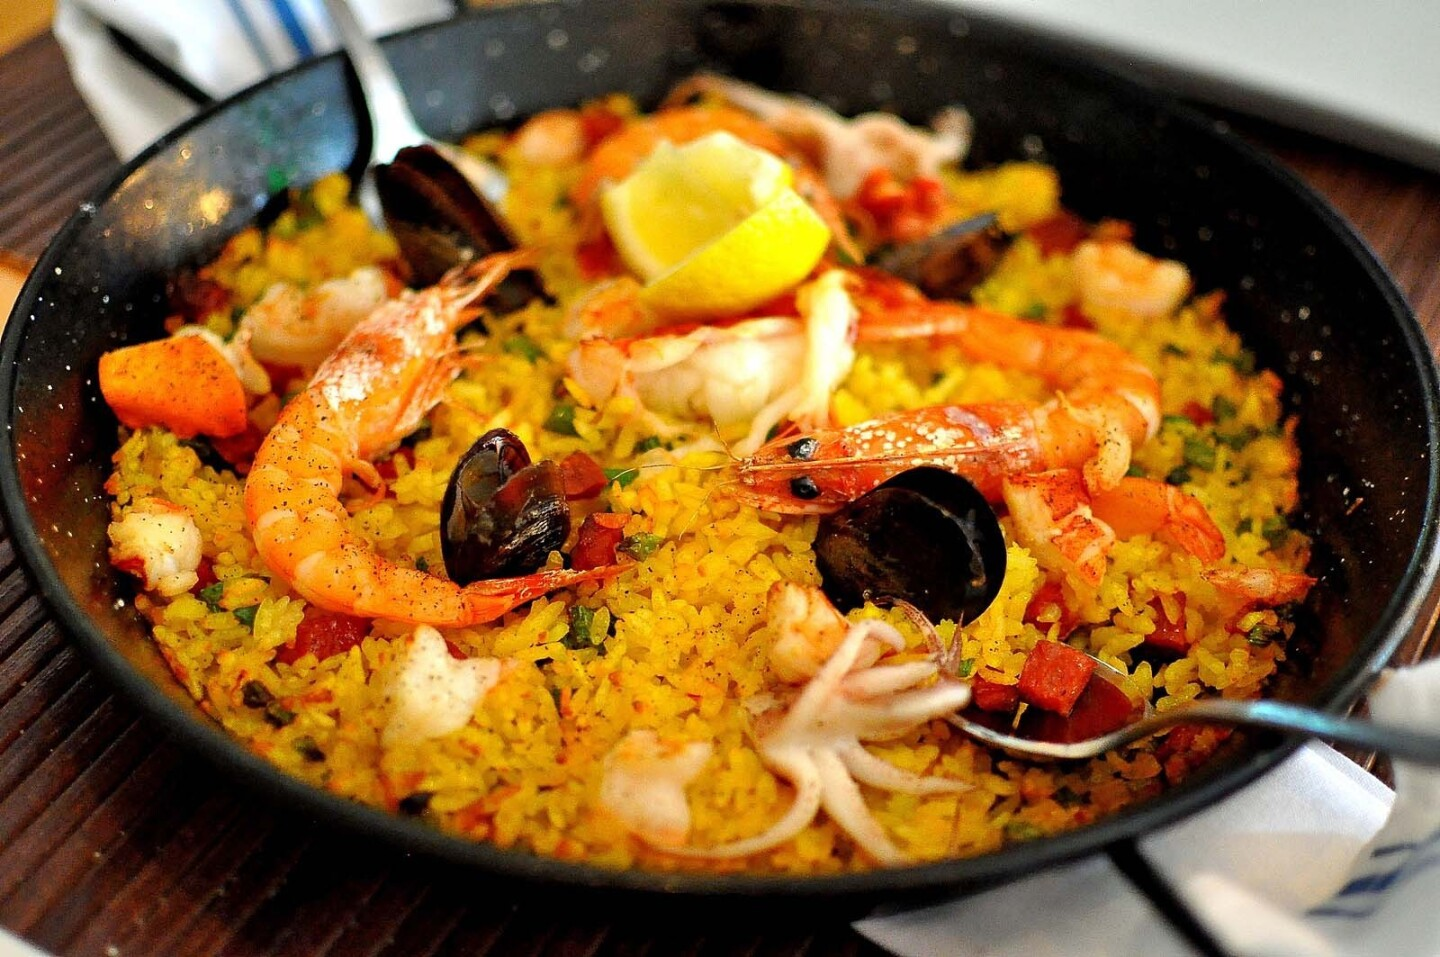 Paella, rich with seafood, is a good choice at AltaEats.